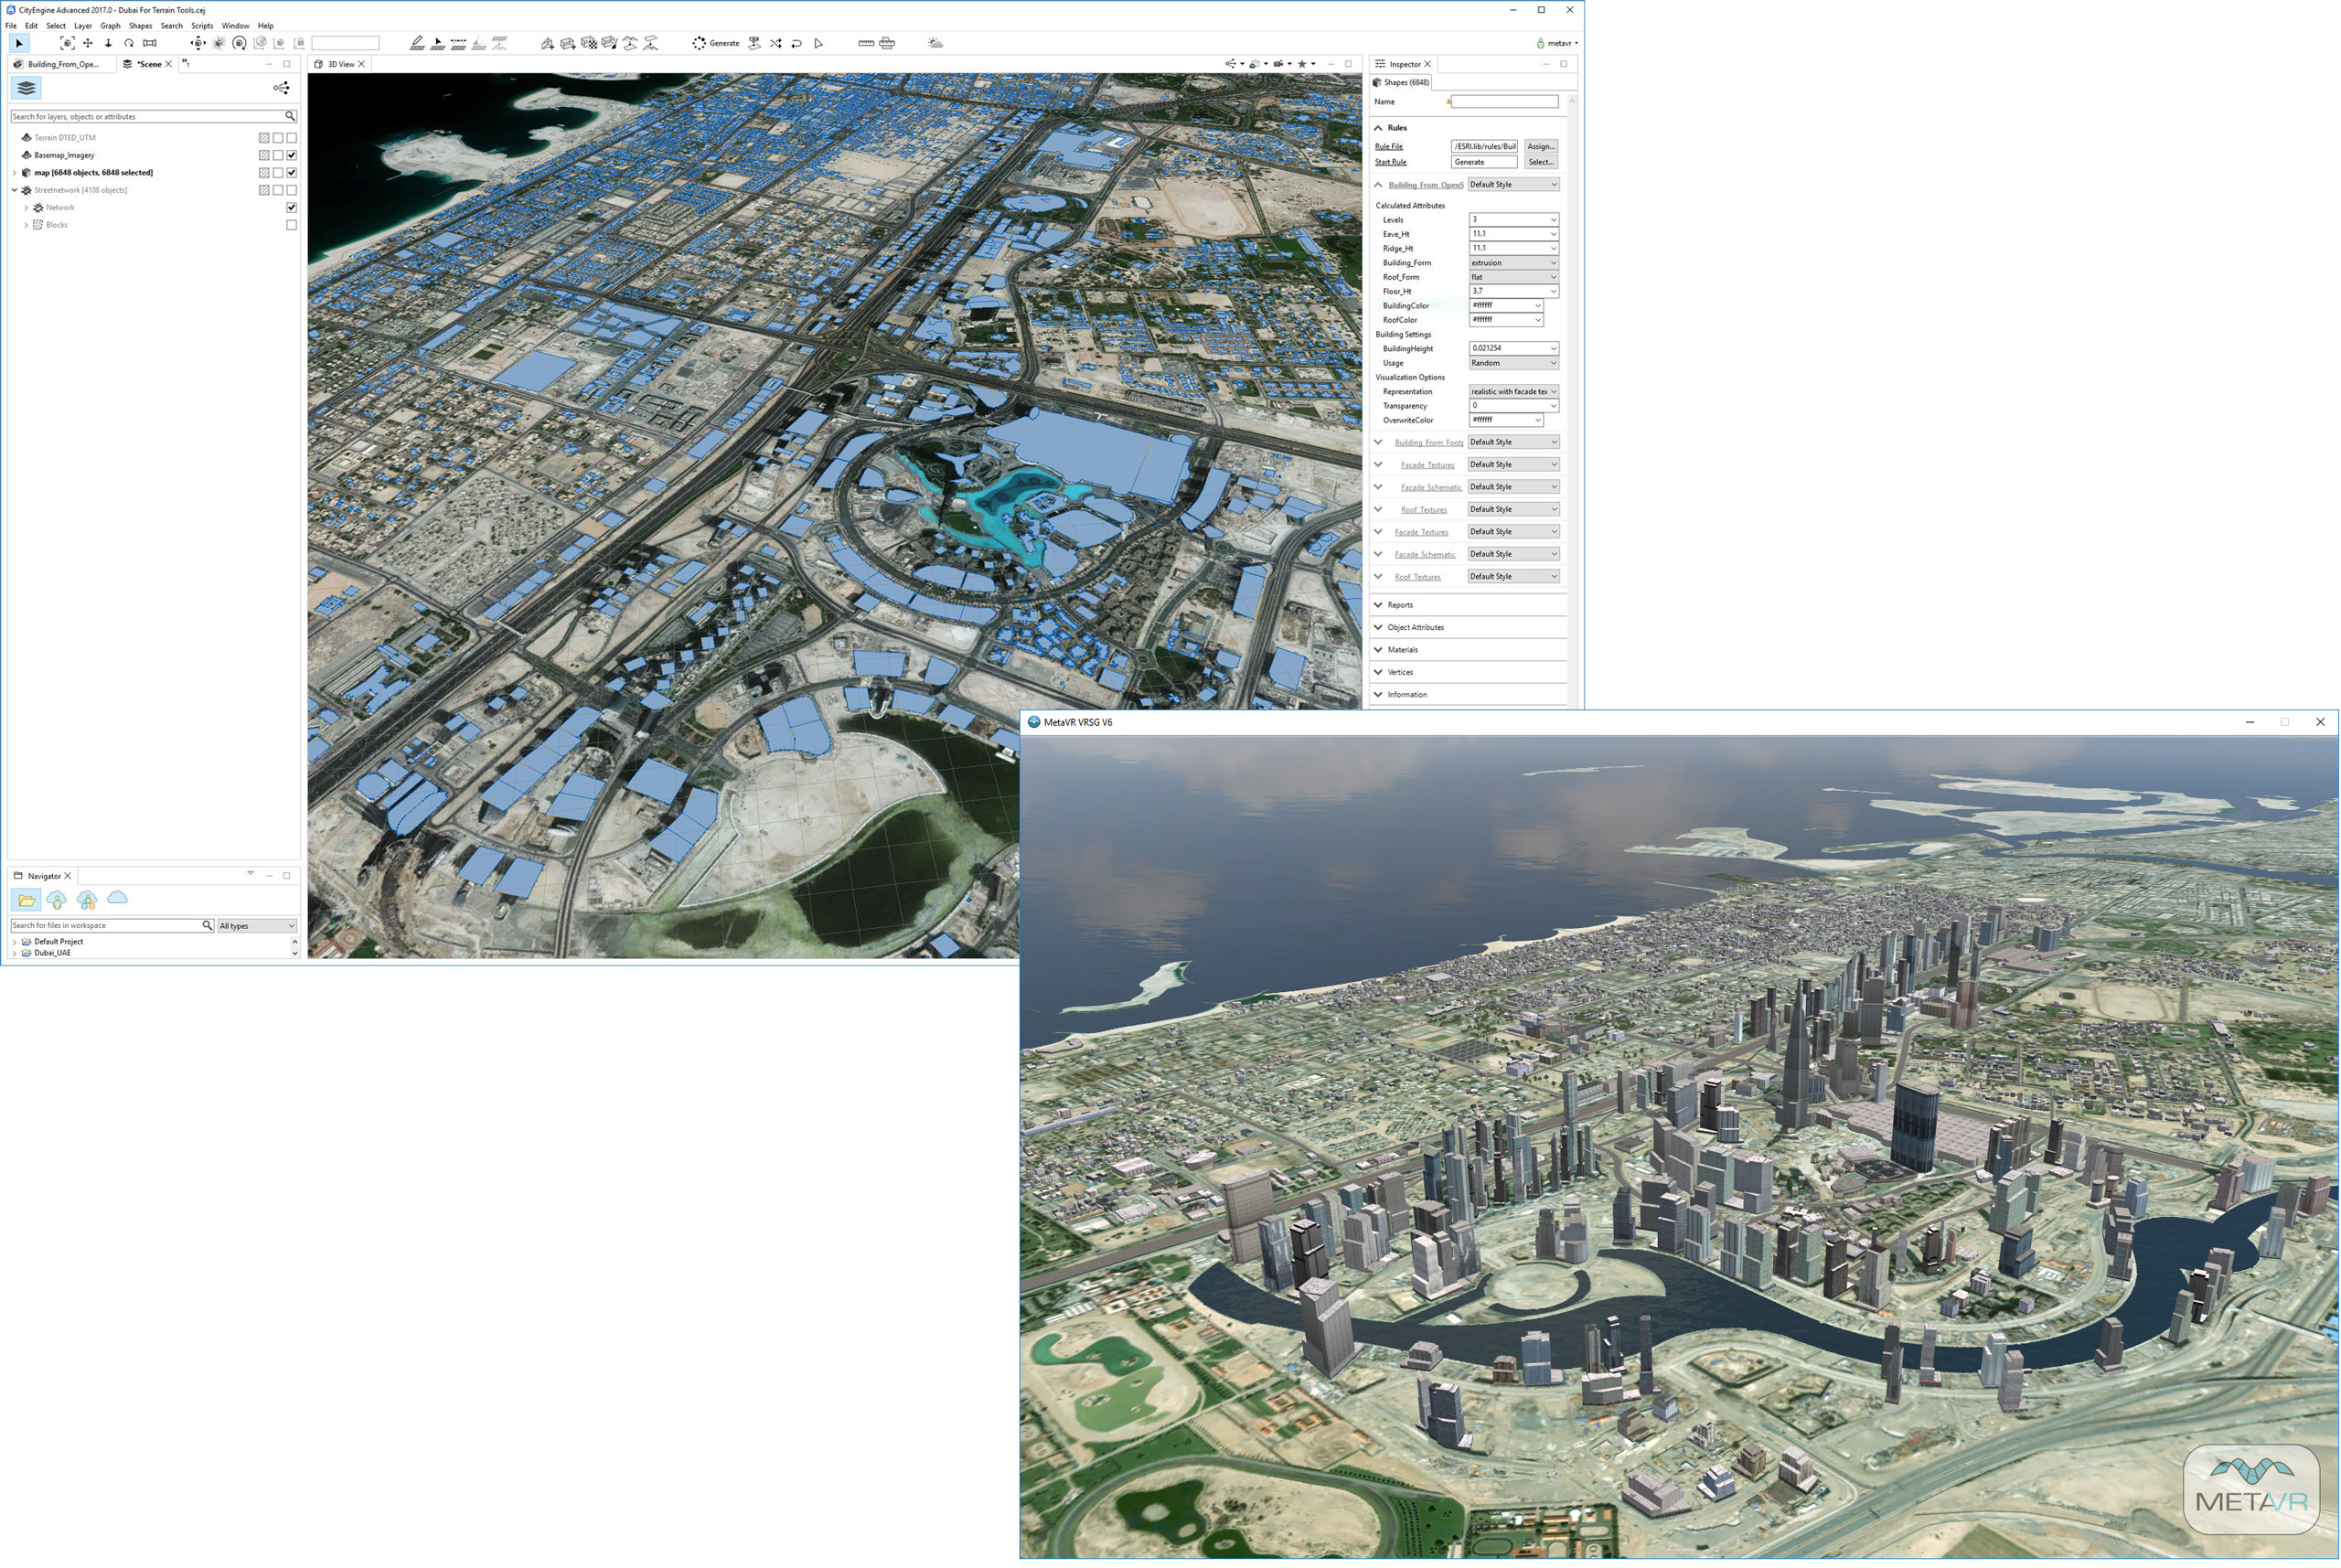 Using Terrain Tools and Esri CityEngine, MetaVR created an urban environment of more than 6,000 realistic 3D buildings in virtual Dubai, United Arab Emirates.